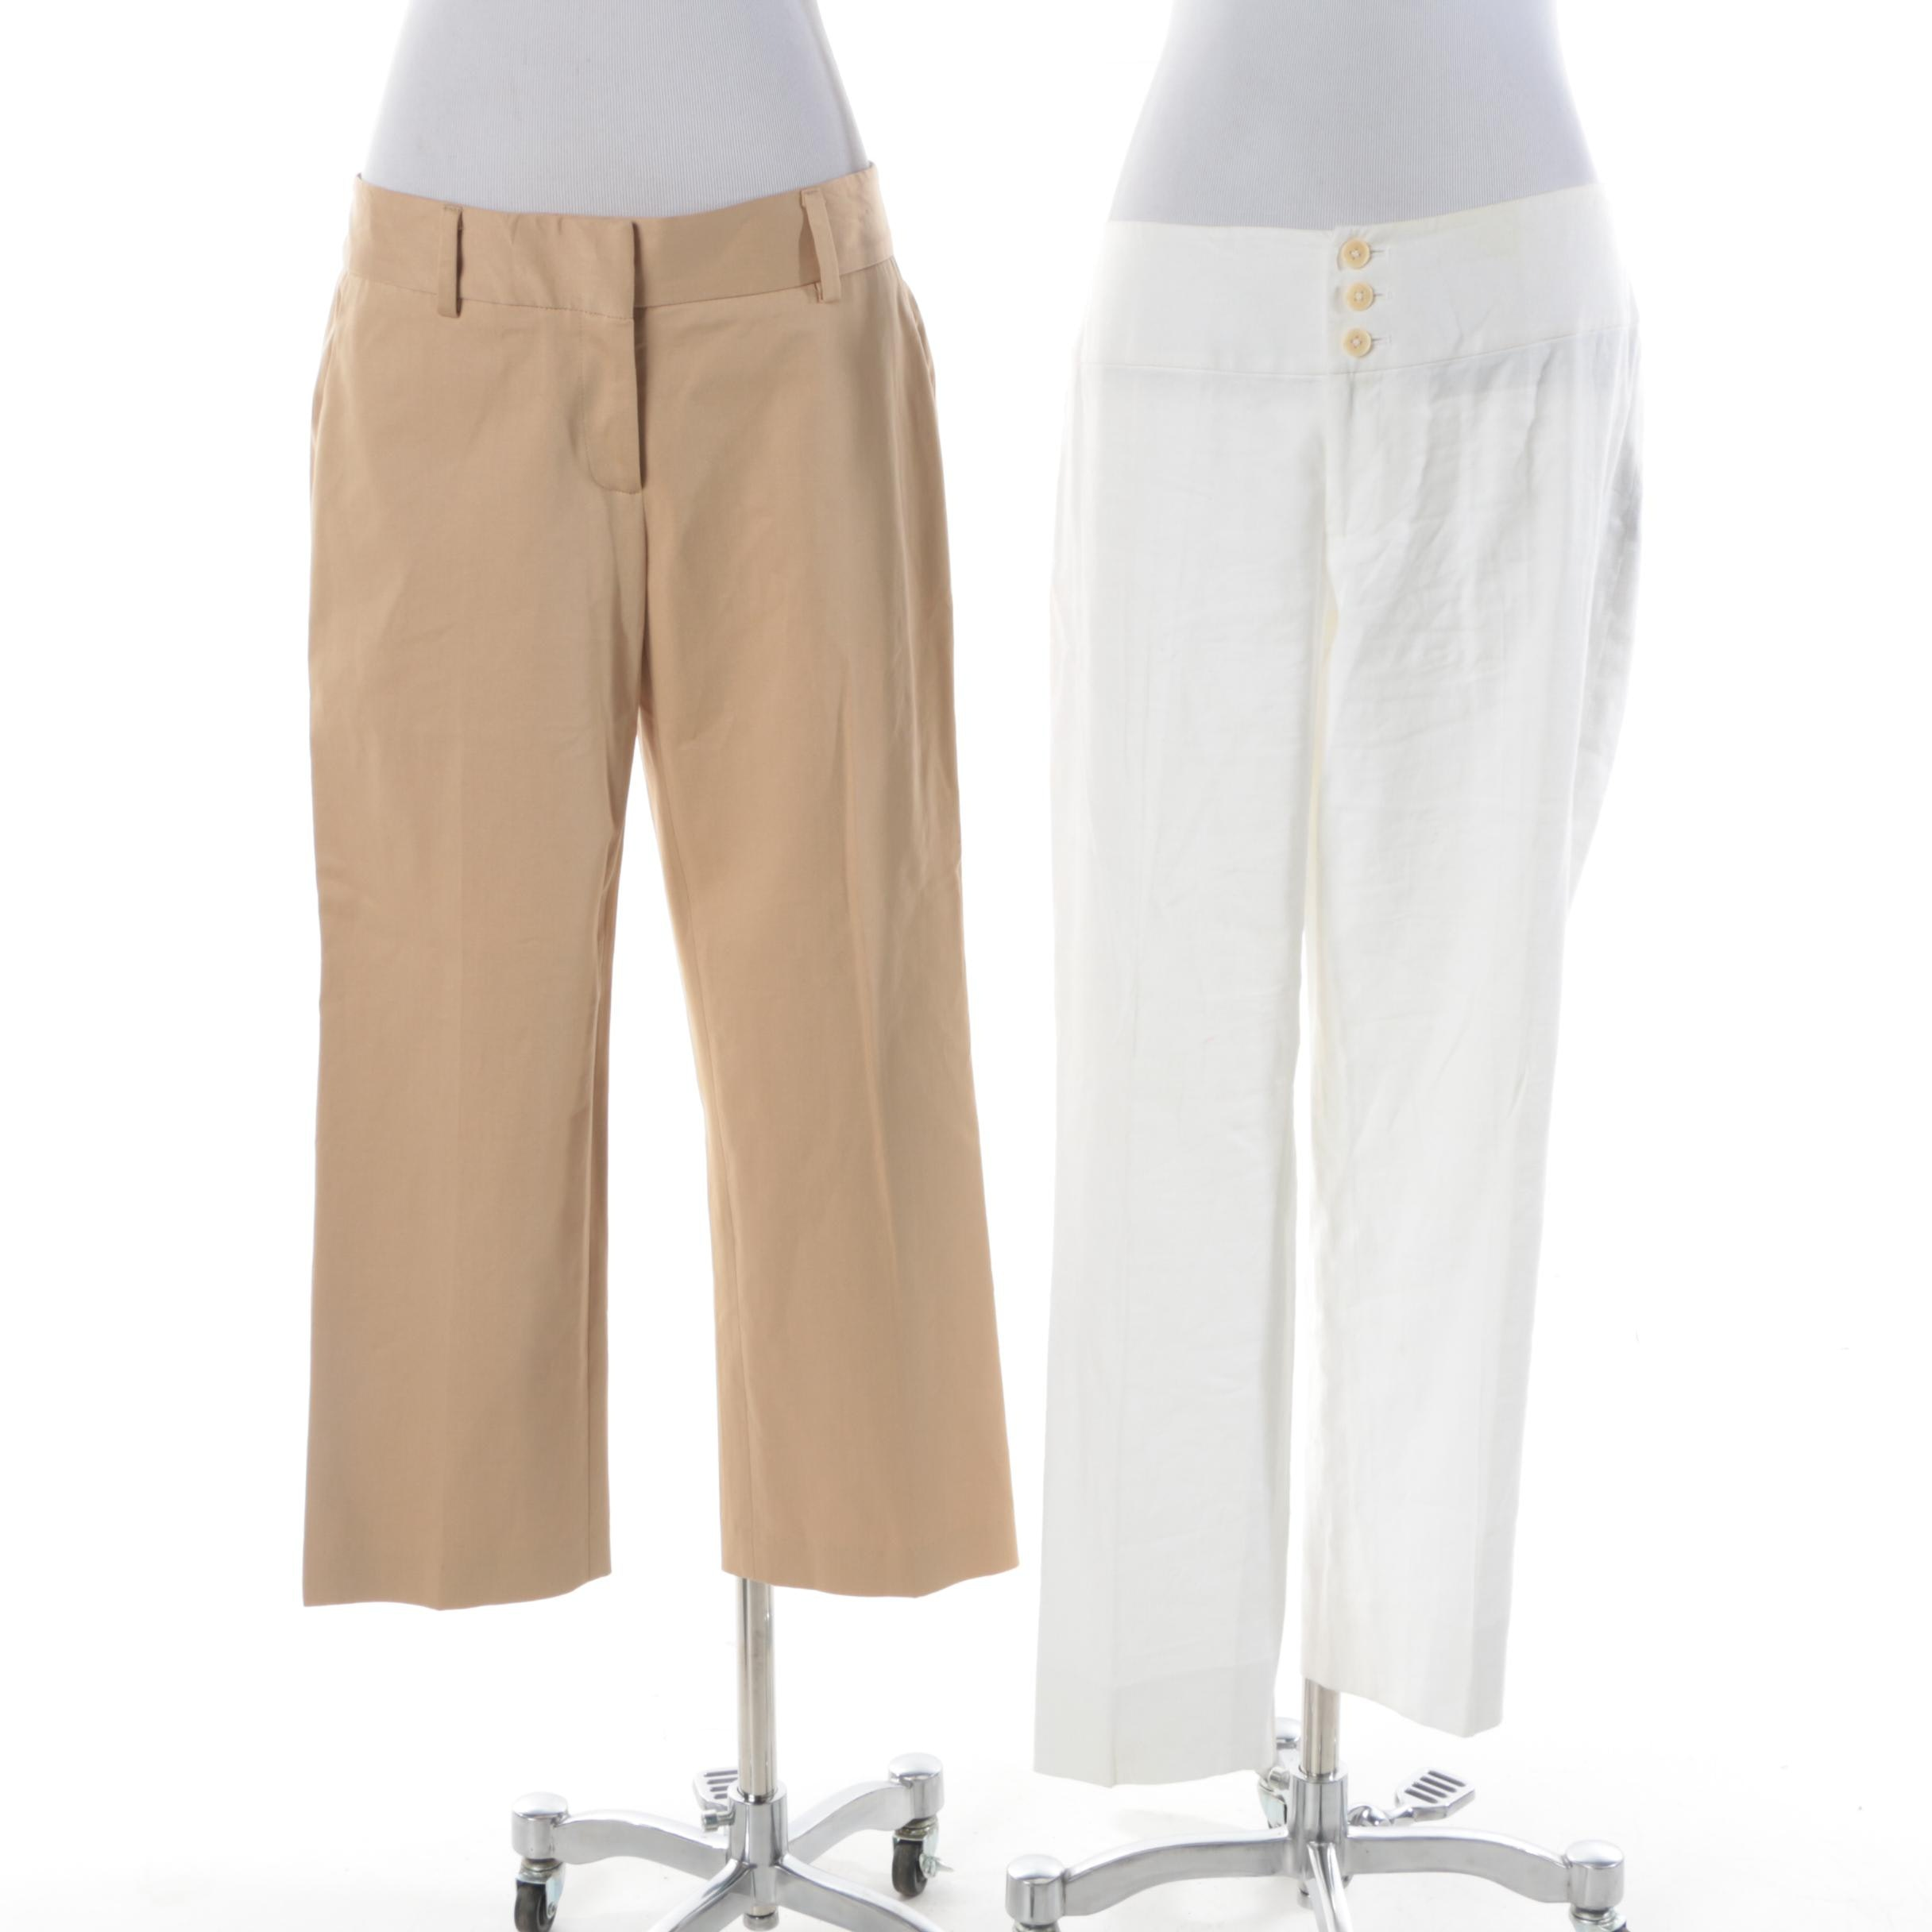 Women's Ralph Lauren and Laundry by Shelli Segal Pants